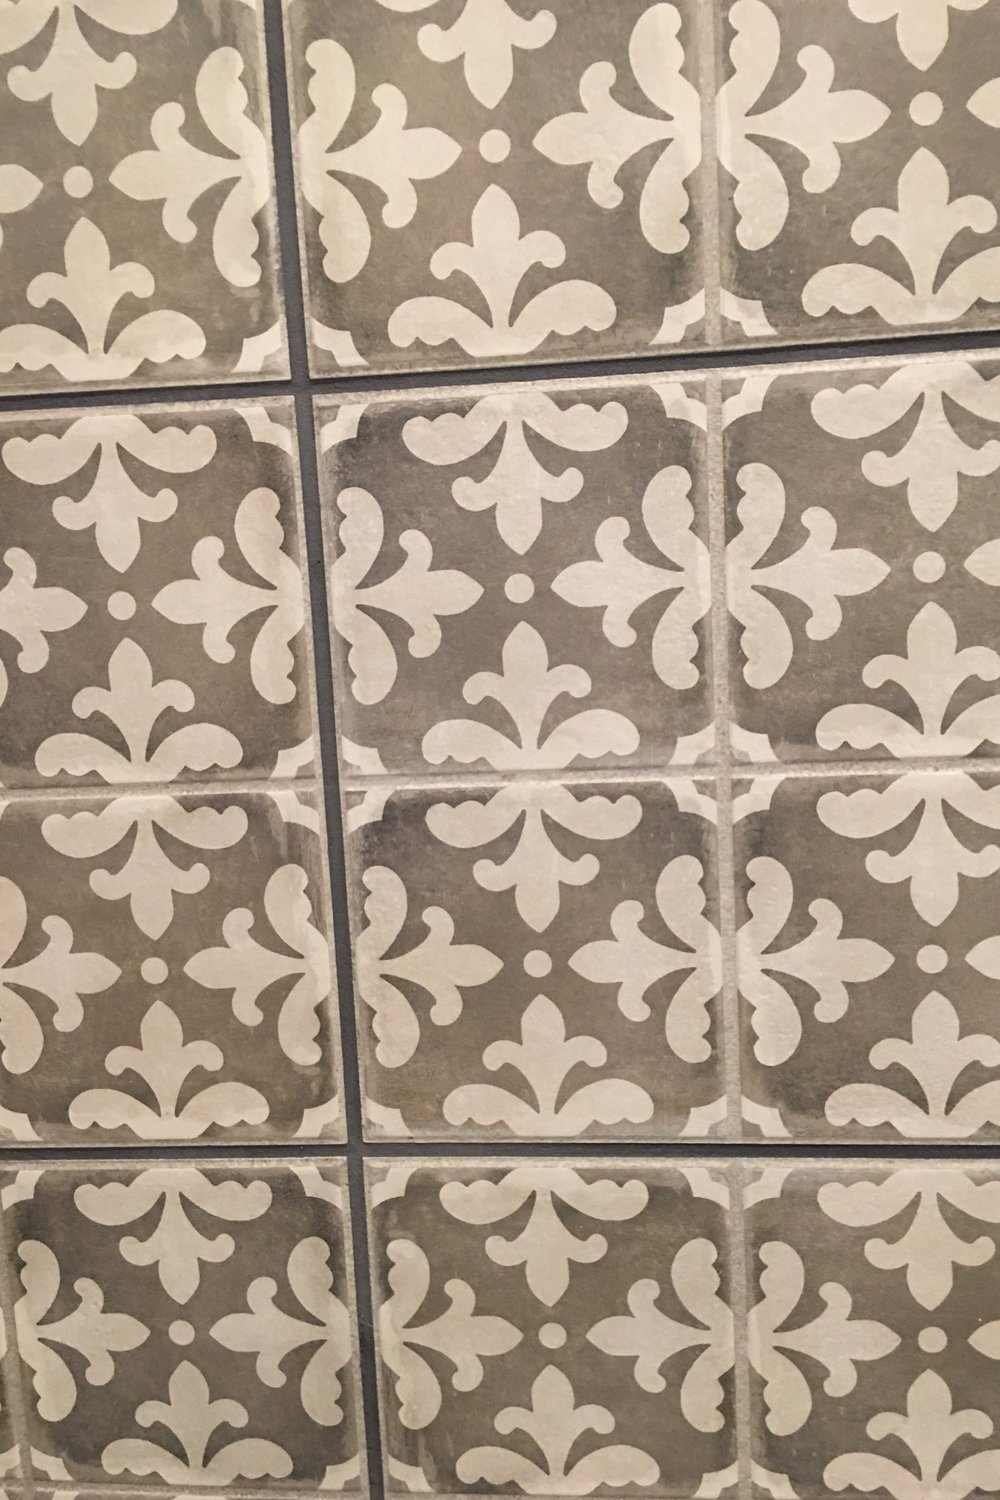 Lots of patterned tile was used in the homes.  Many were a muted grey, but several were high contrast and even painted.